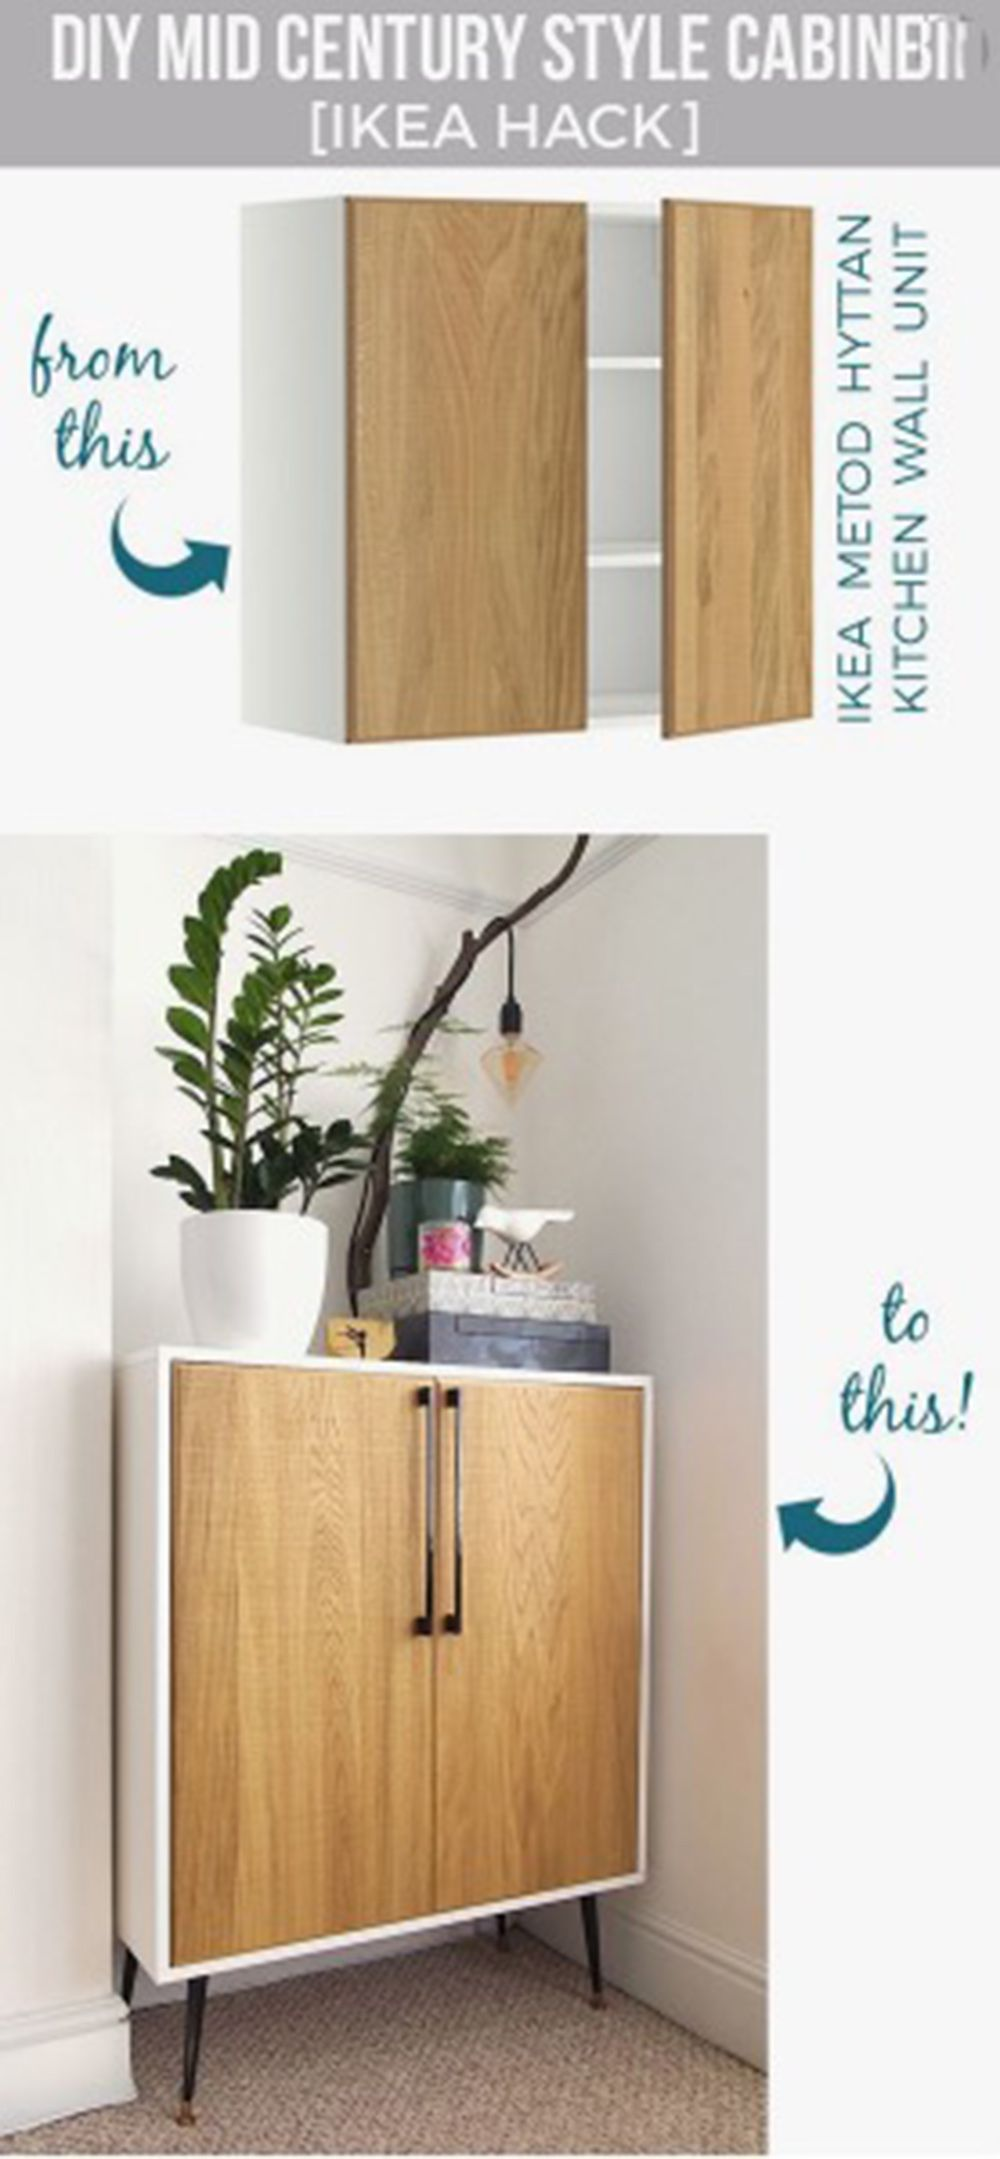 Range Vinyle Ikea 15 Ikea Hacks To Transform Your Living Room